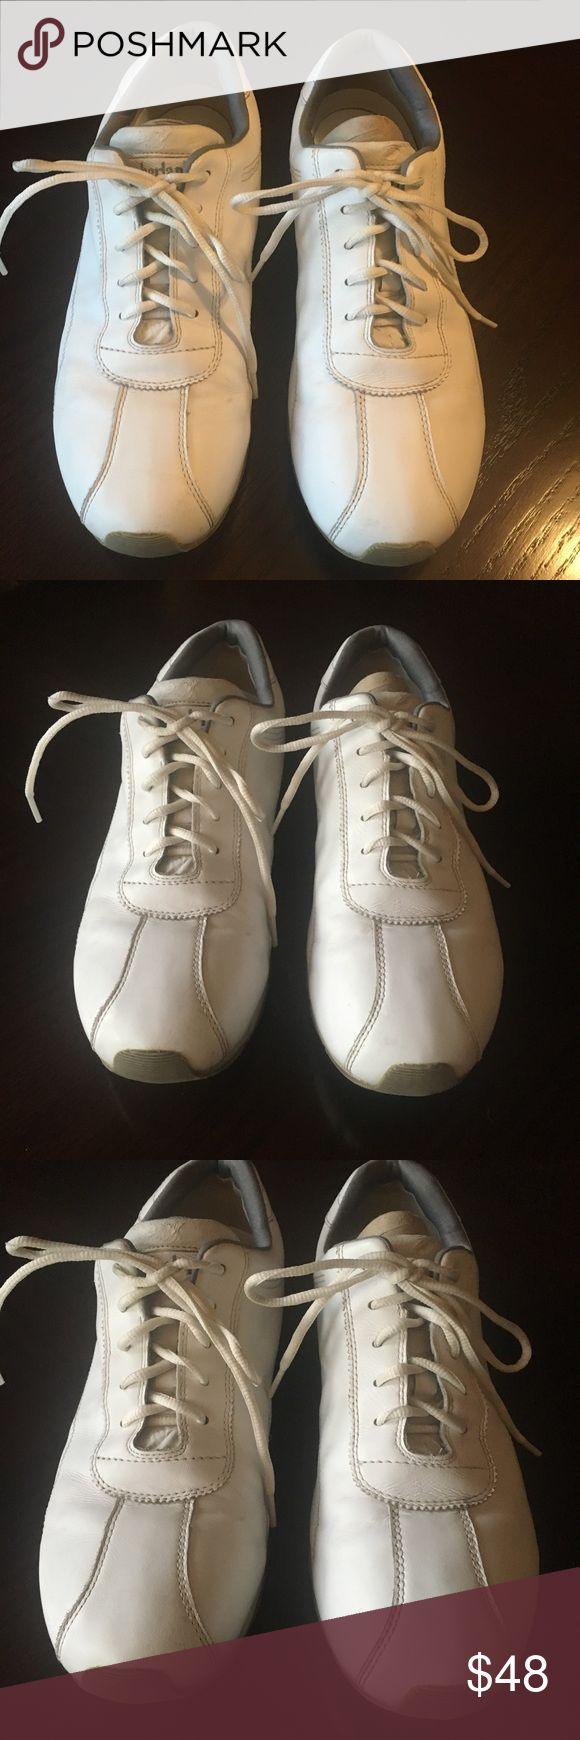 Timberland Sneakers White Timberland sneakers in great used condition! Gray logo with some additional gray detailing. Super comfortable insole makes them easy to wear all day. Genuine leather upper. Size 10 1/2 Timberland Shoes